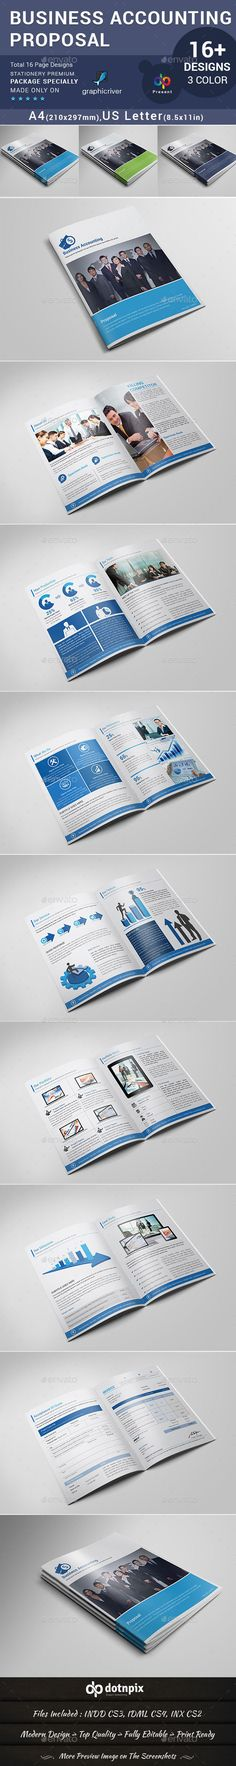 Company Proposal Template Proposal templates, Branding design - best proposal templates